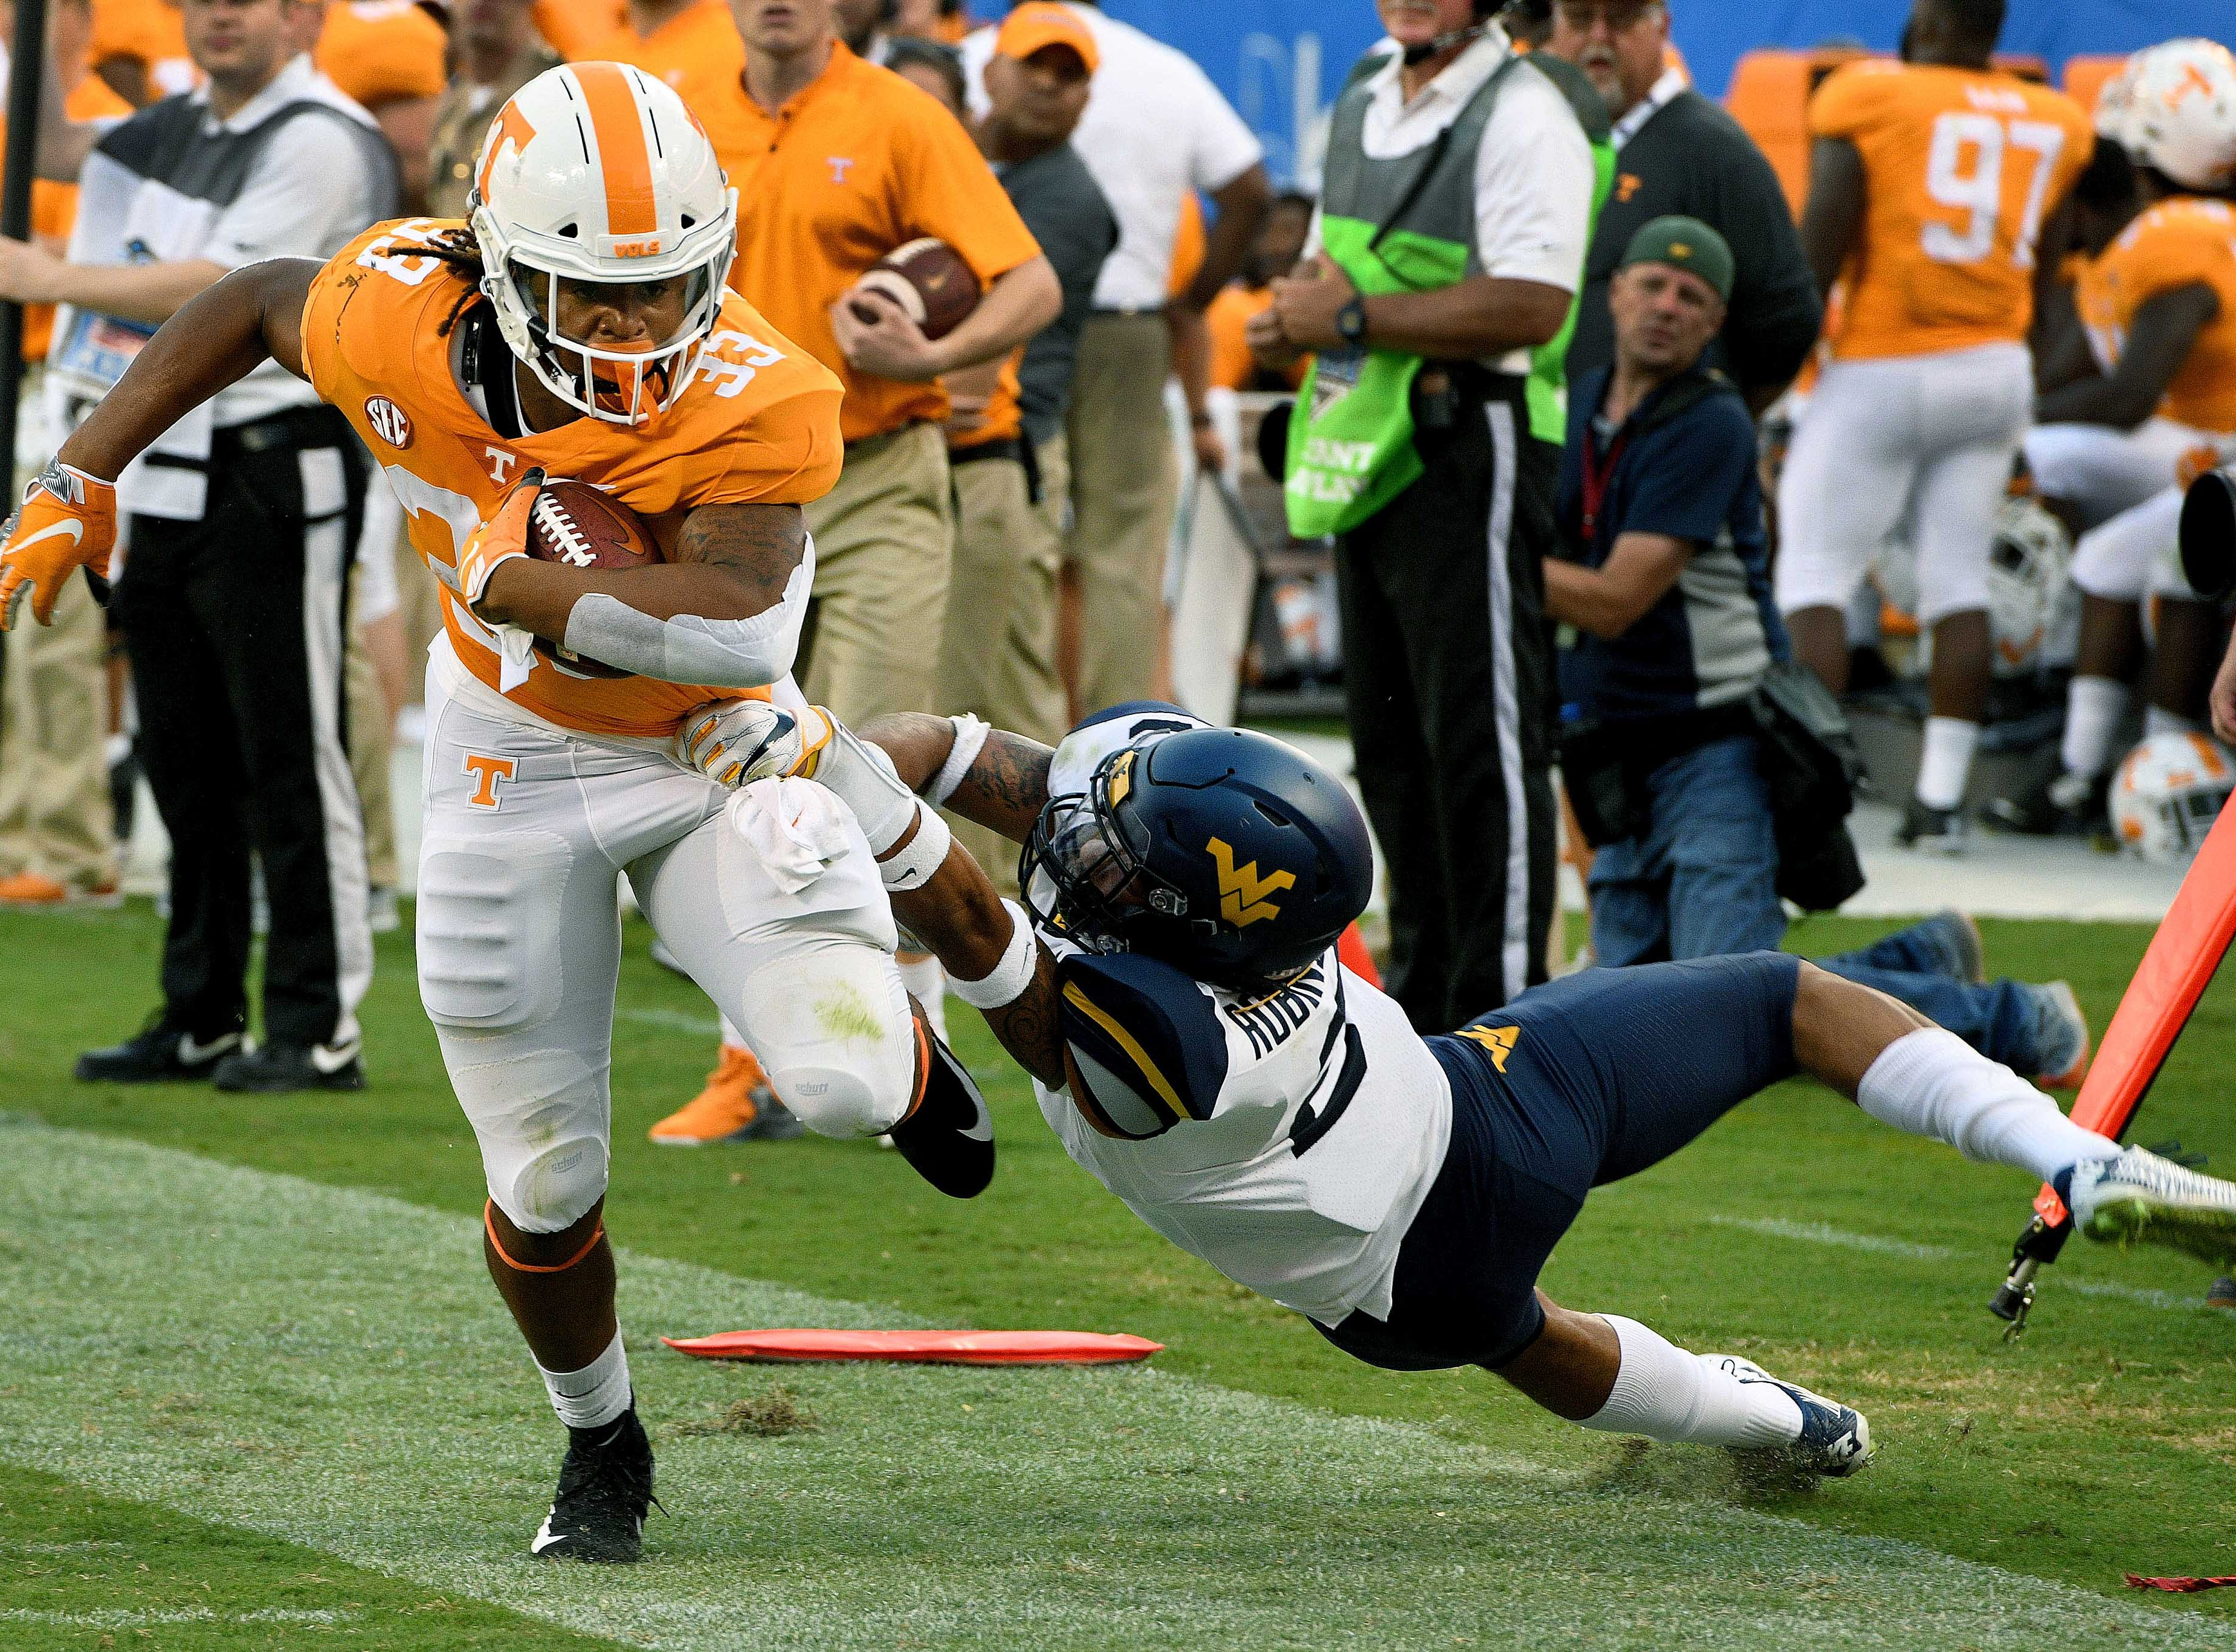 Tennessee running back Jeremy Banks (33) is pulled out of bounds during first half action against the West Virginia Mourtaineers in the Belk College Kickoff game in Charlotte, NC Saturday, September 1, 2018.